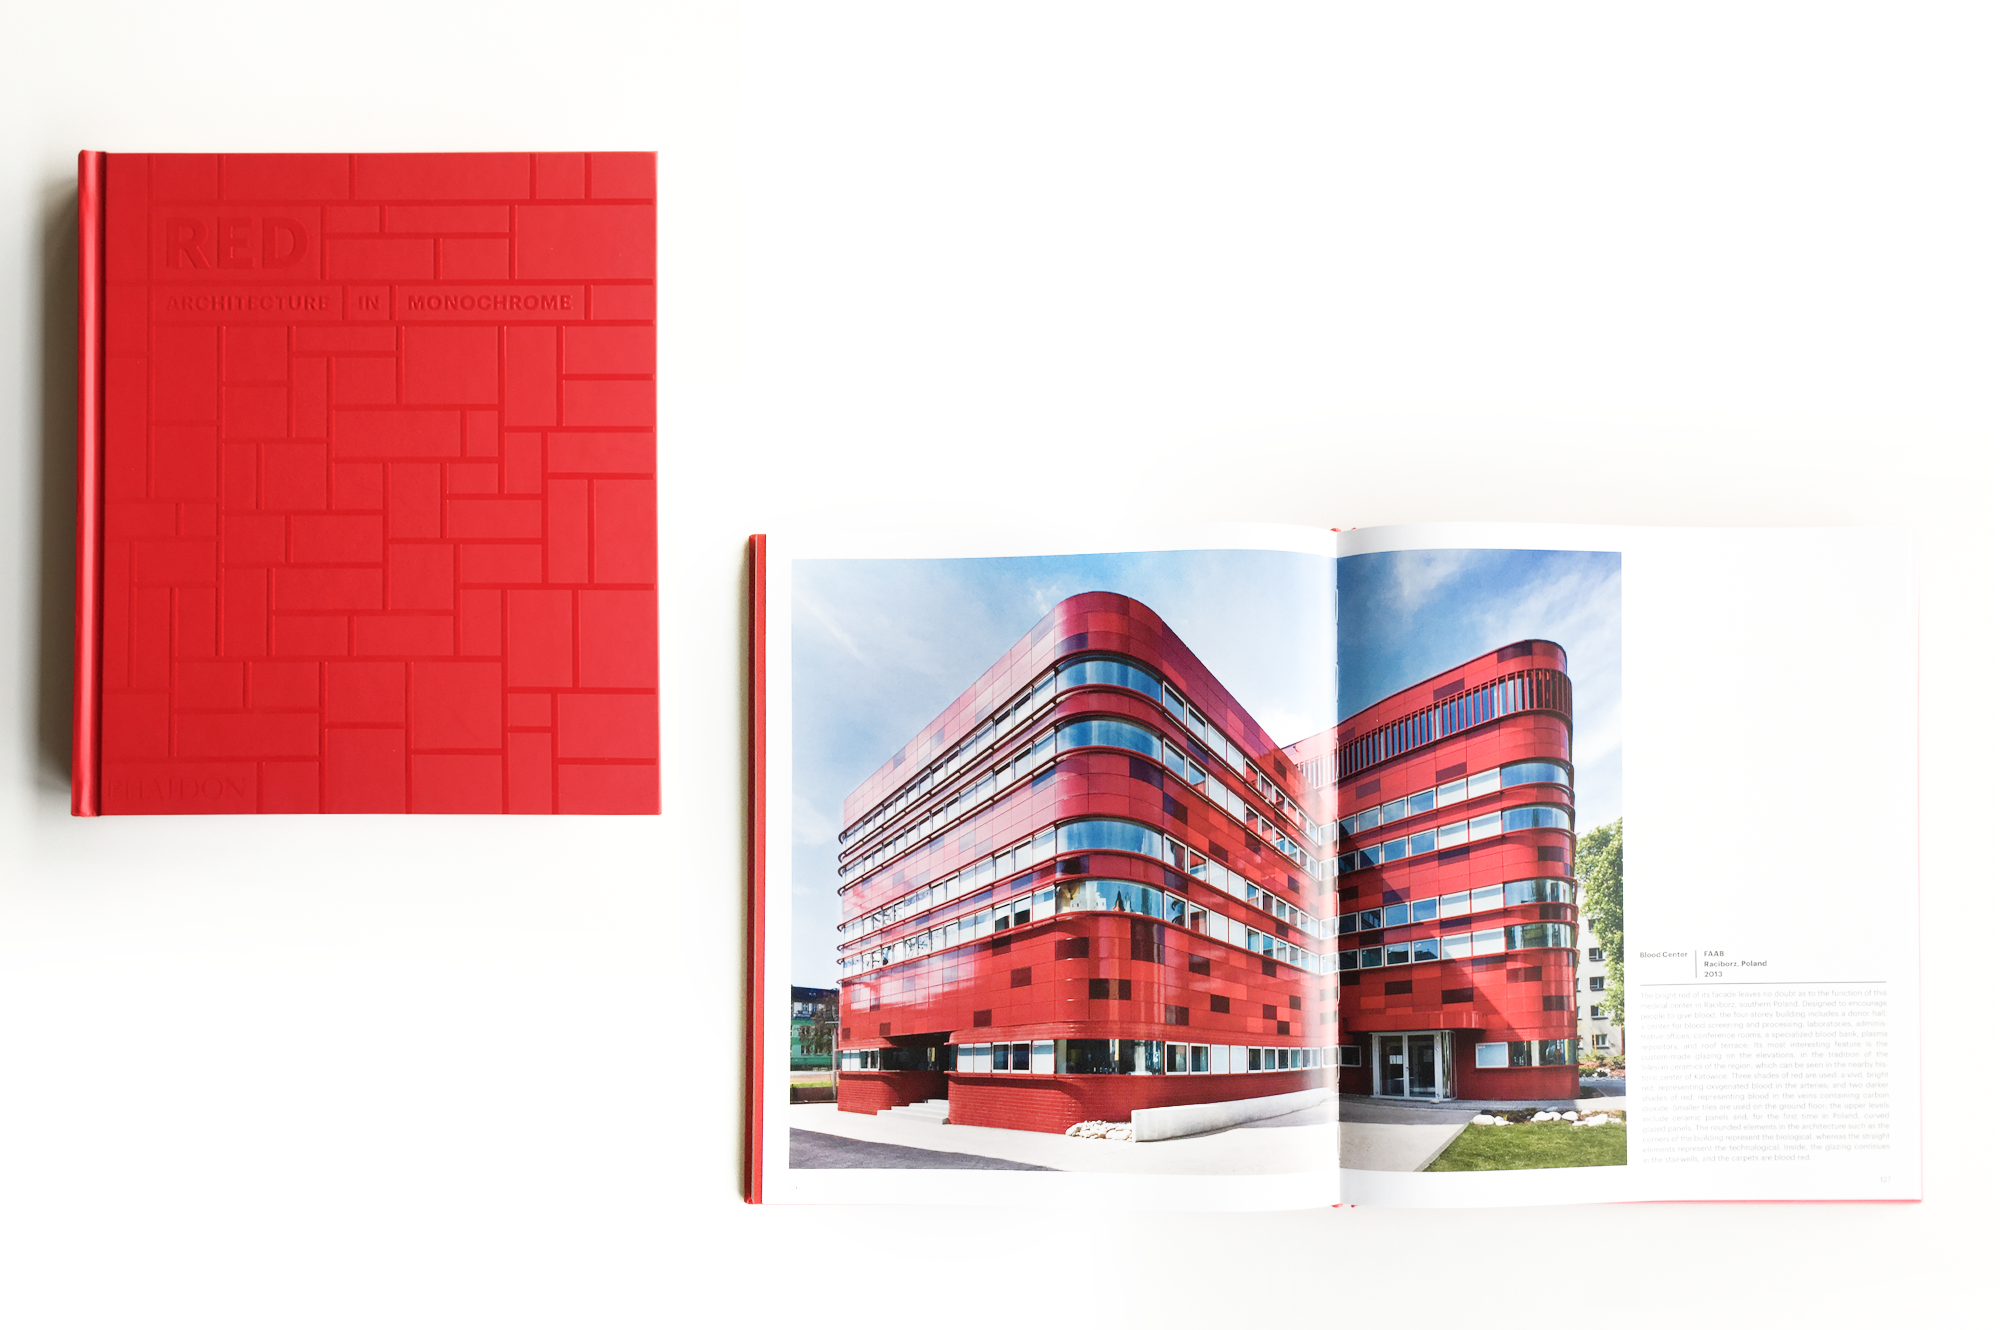 RCKiK in Racibórz: Red. Architecture in monochrome – published by Phaidon